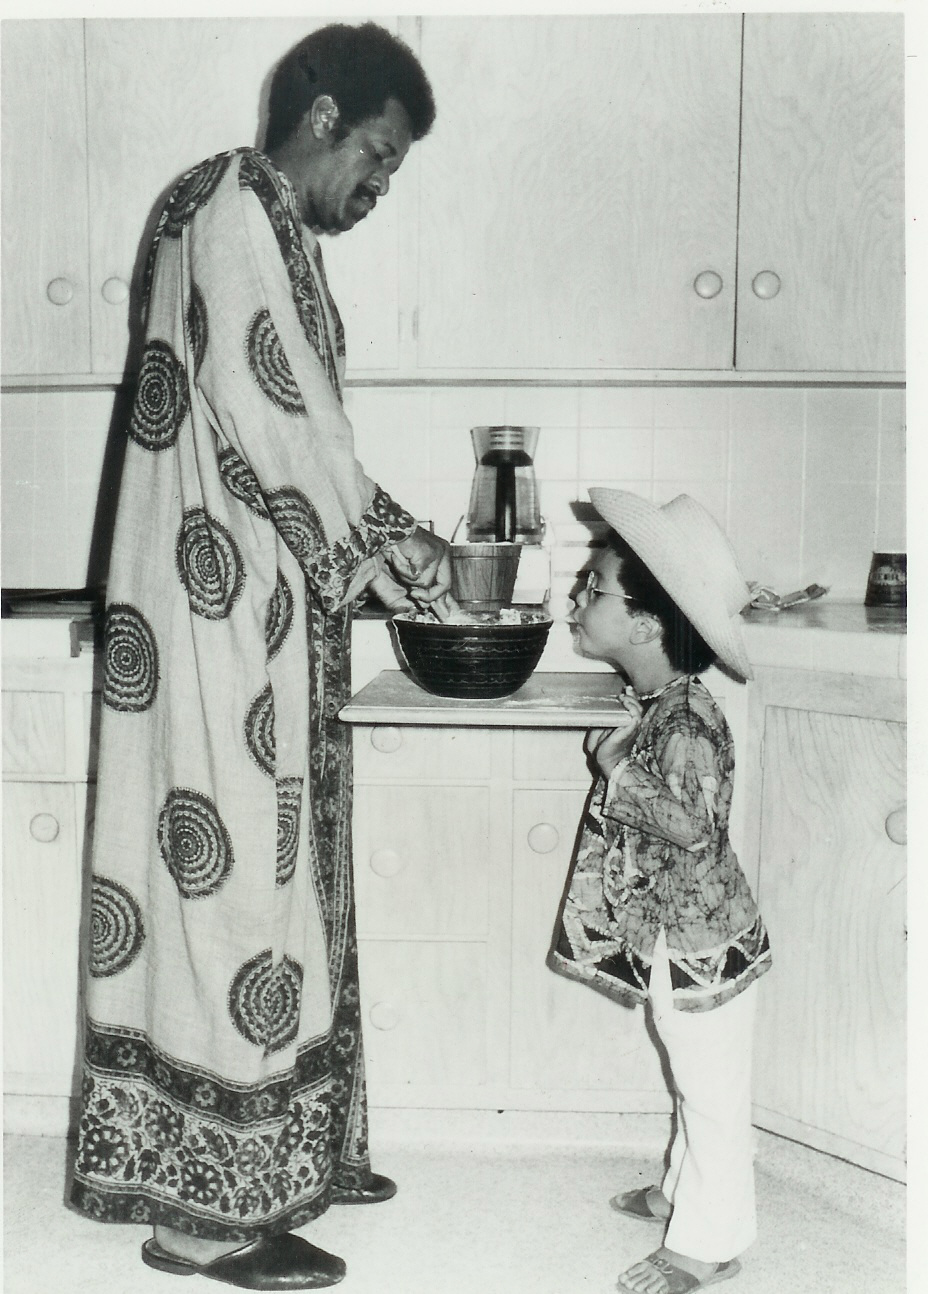 With father, wally amos, circa 1970s